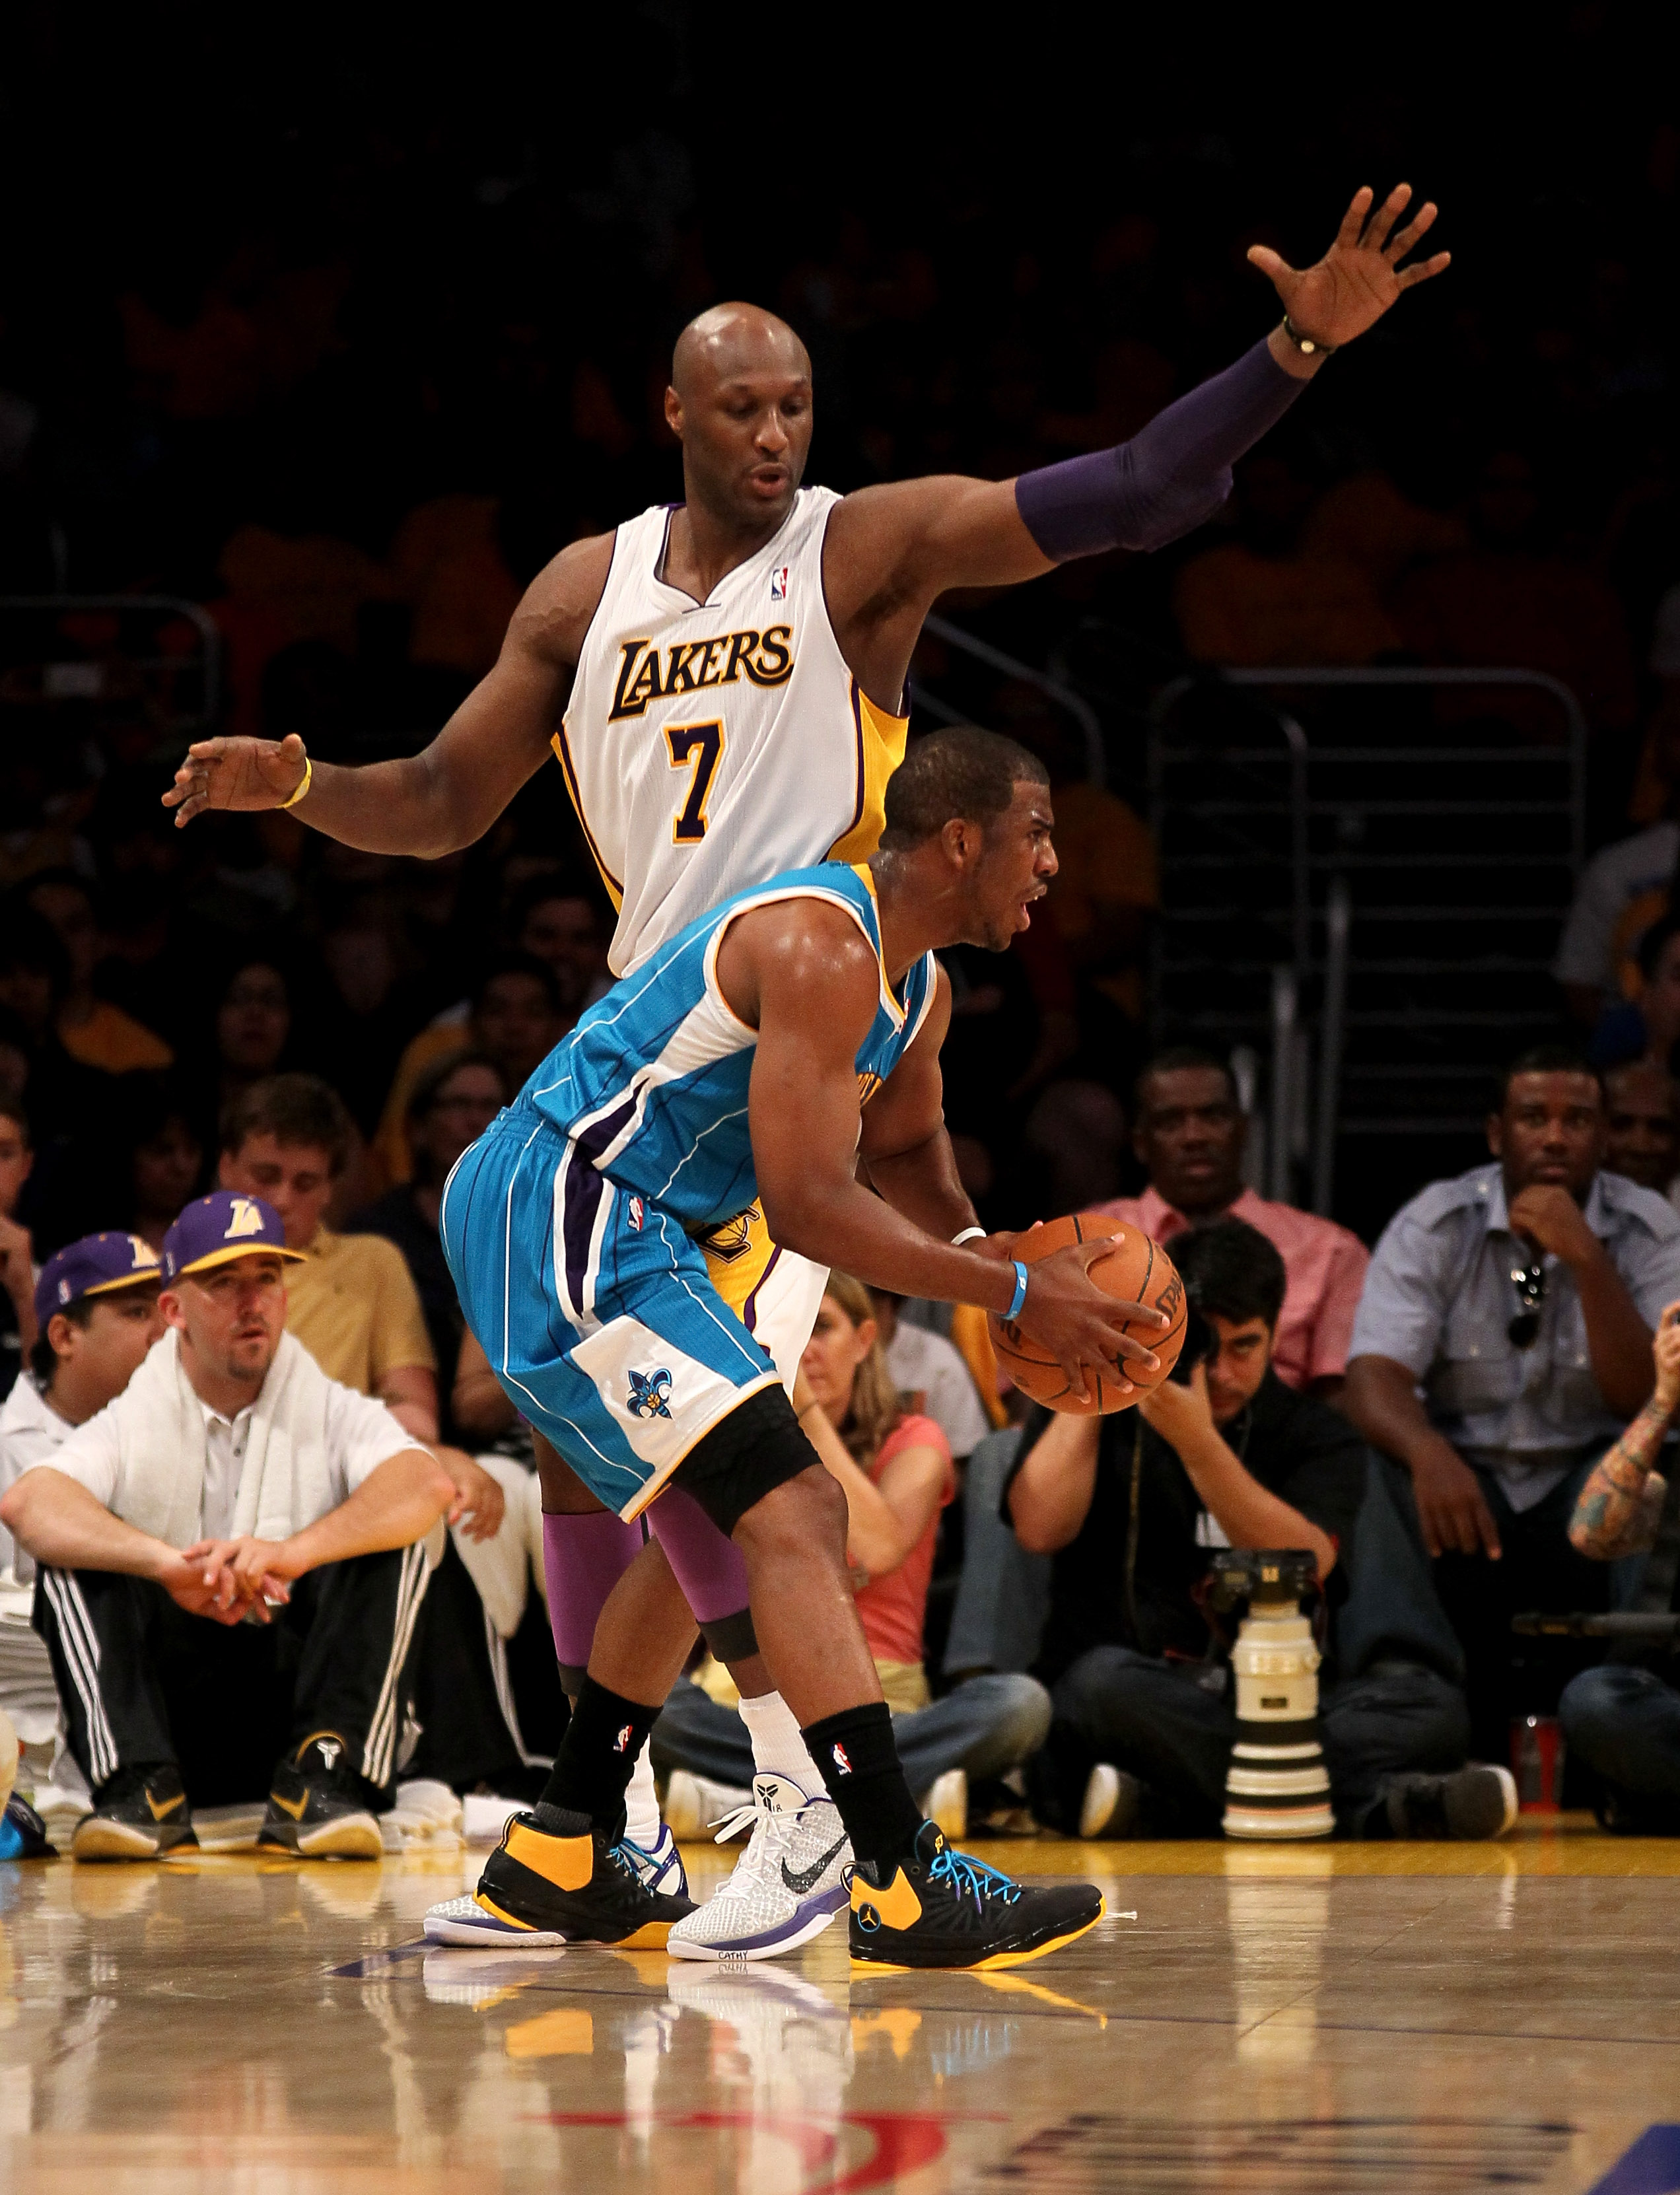 LOS ANGELES, CA - APRIL 17:  Chris Paul #3 of  the New Orleans Hornets controls the ball against Lamar Odom #7 of the Los Angeles Lakers in Game One of the Western Conference Quarterfinals in the 2011 NBA Playoffs on April 17, 2011 at Staples Center in Lo